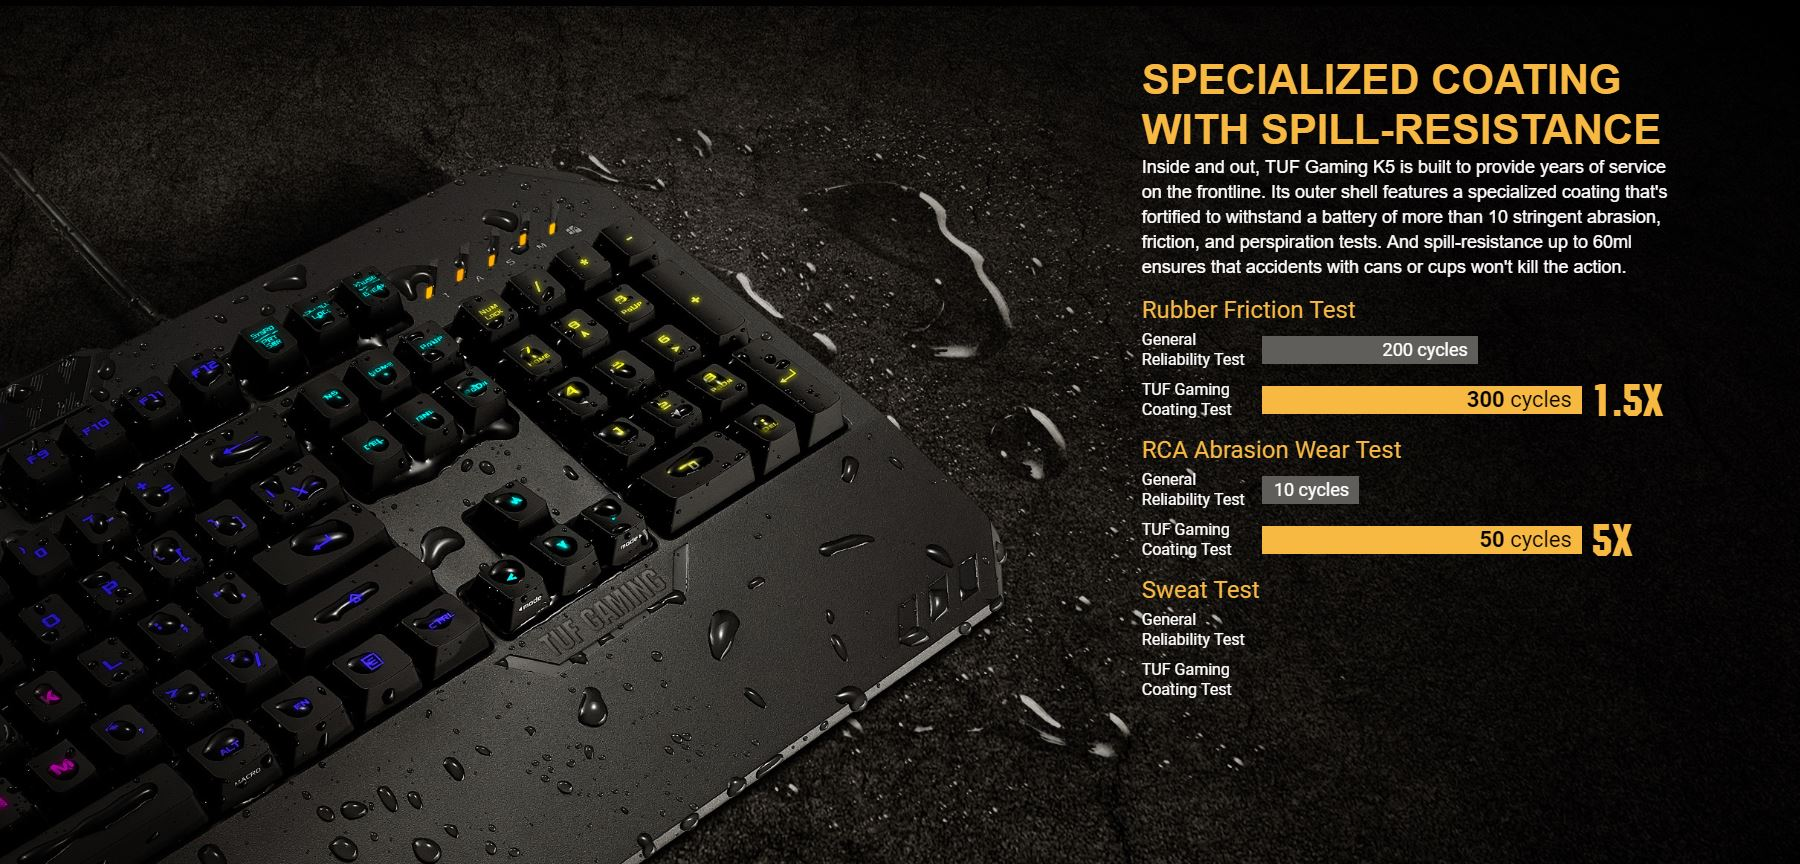 ASUS TUF Gaming K5 RGB keyboard with tactile Mech-Brane key switches,  specialized coating for extended durability, spill-resistance and Aura Sync